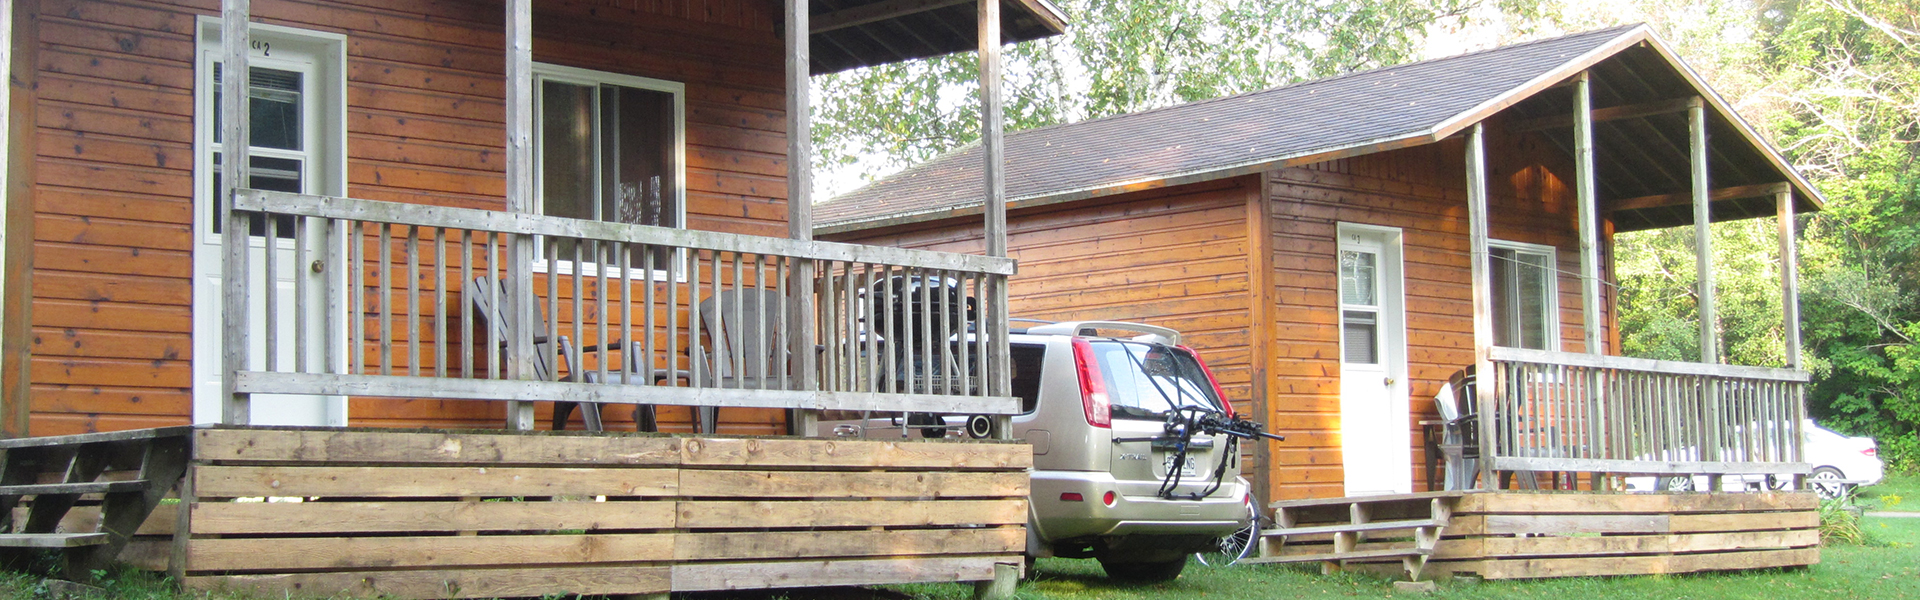 Camping Union - Camping Lac-Saint-Michel : Chalet rental, Bruce tent ready to camp!